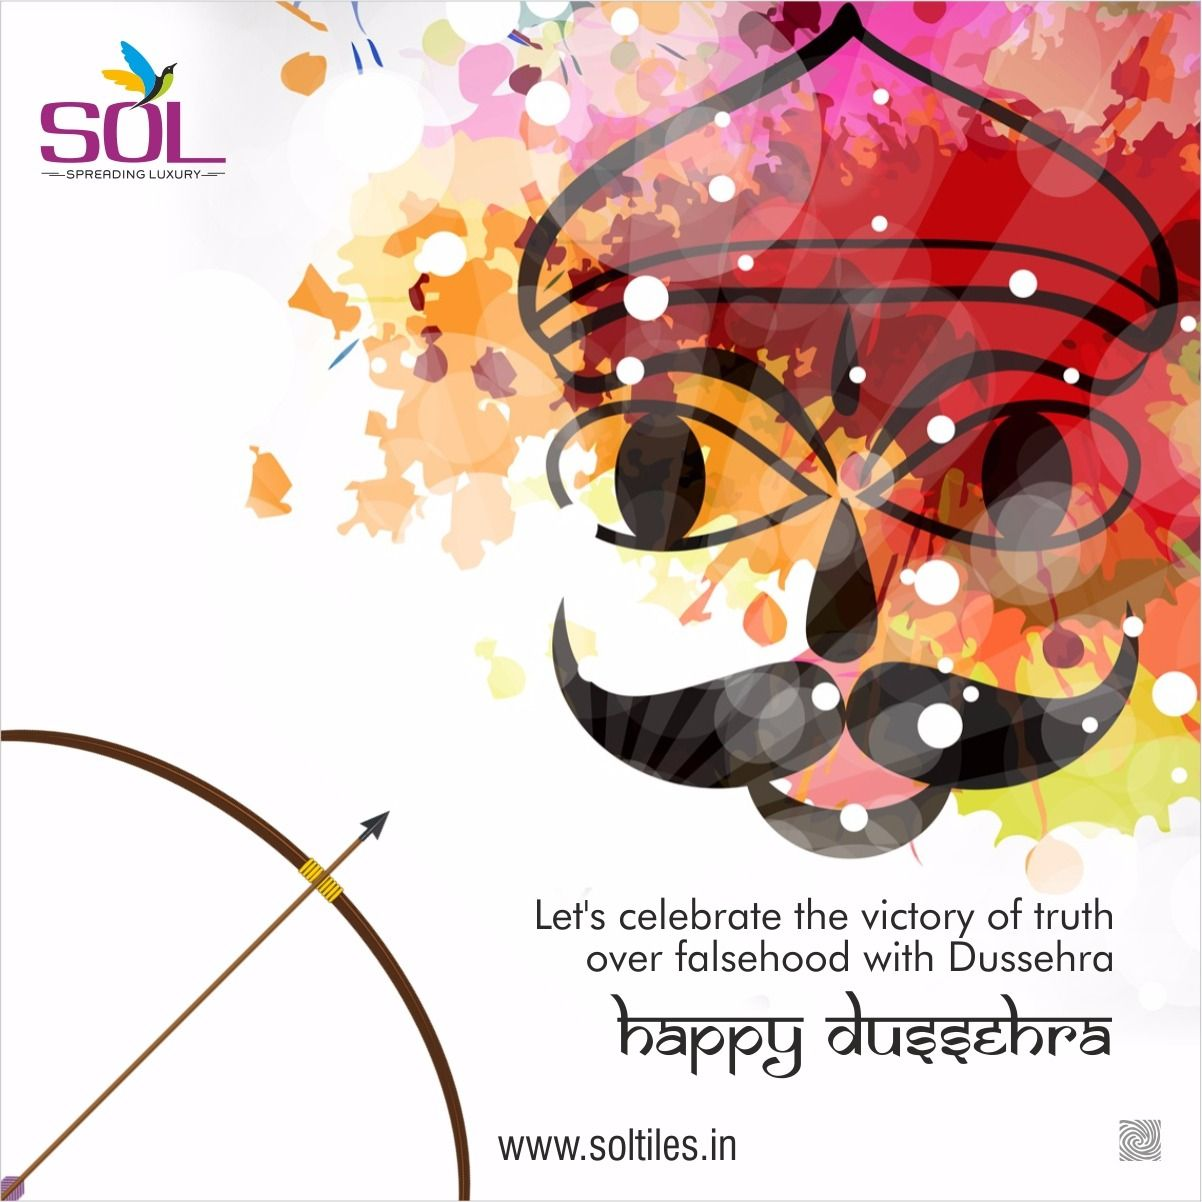 Soltileslets celebrate the victory of truth over falsehood with explore dussehra images dussehra greetings and more kristyandbryce Images